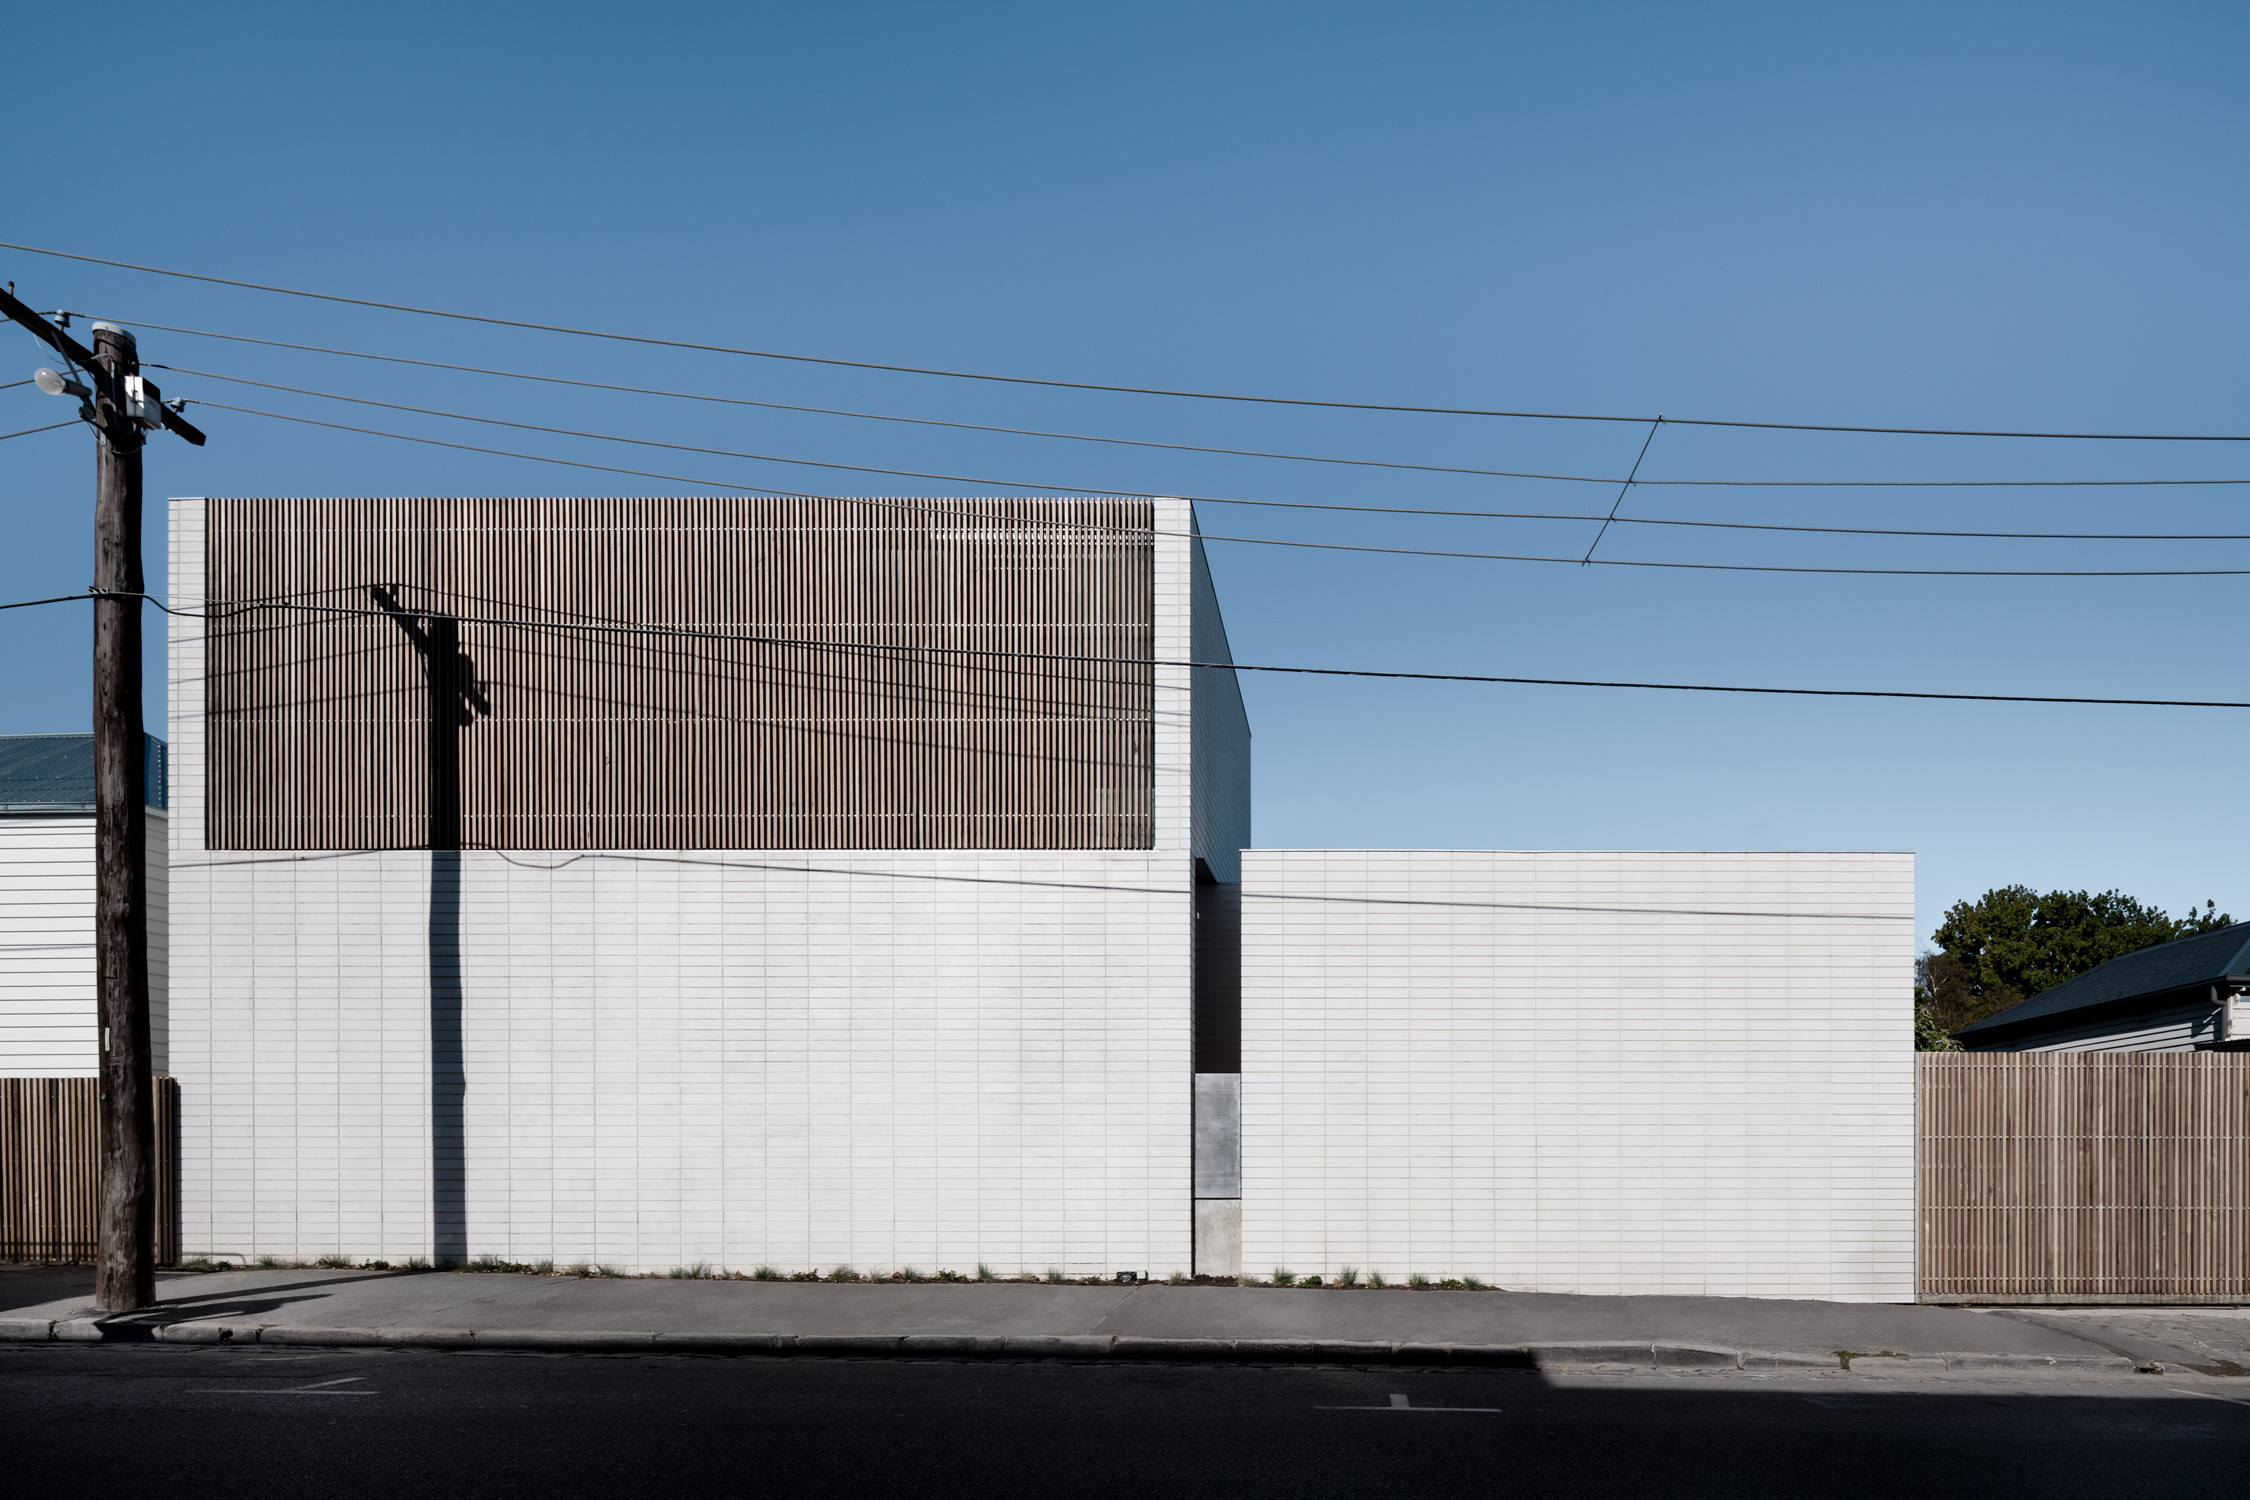 Conceived As A Front To The Commercially Zoned Adjacent Muli Storey Carpark And Retail Zone